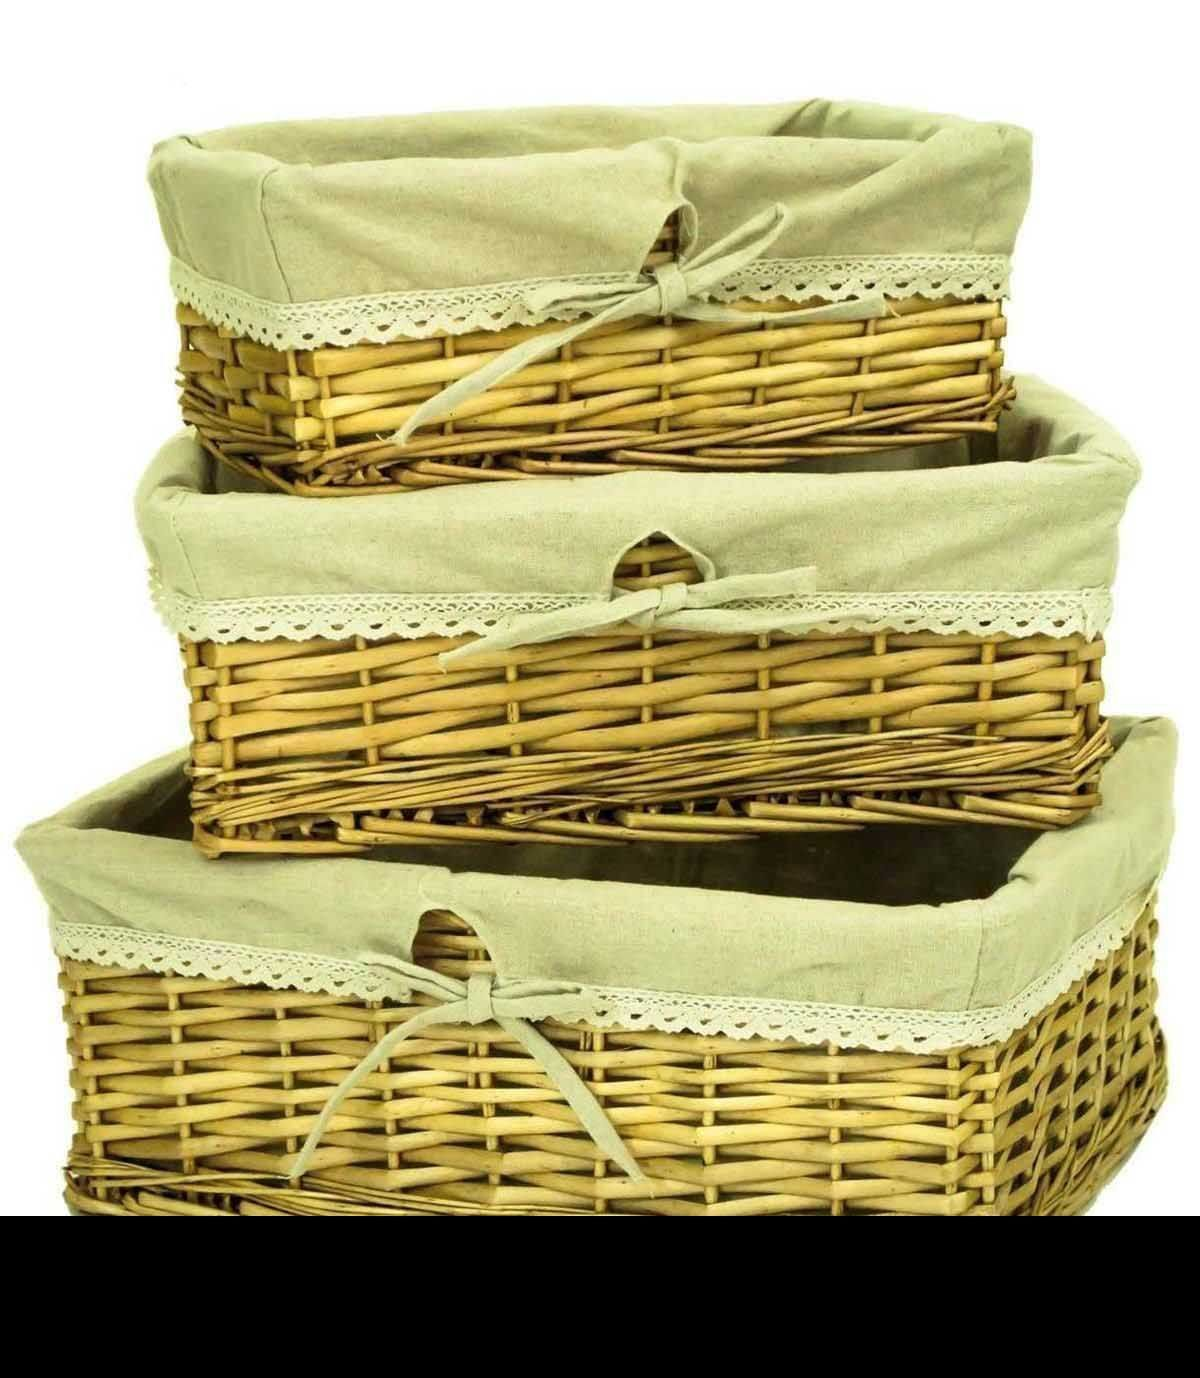 Willow Wicker Storage Basket With Liner For Home: Set Of 3 Shallow Honey Wicker Willow Storage Basket & Lace